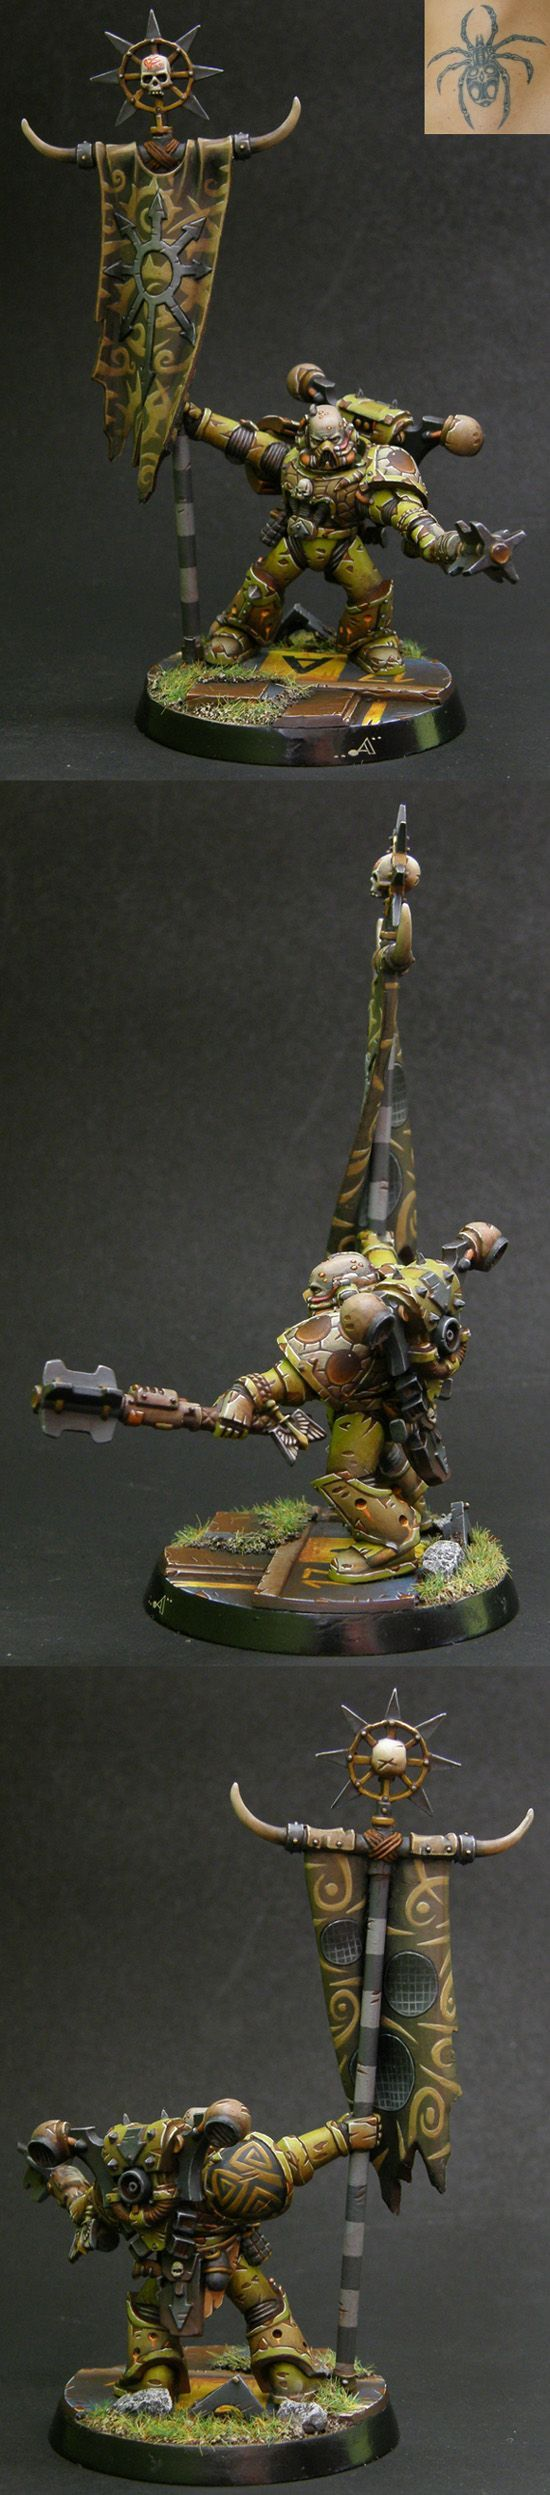 CoolMiniOrNot - Chaos Space Marine of Nurgle by Artur